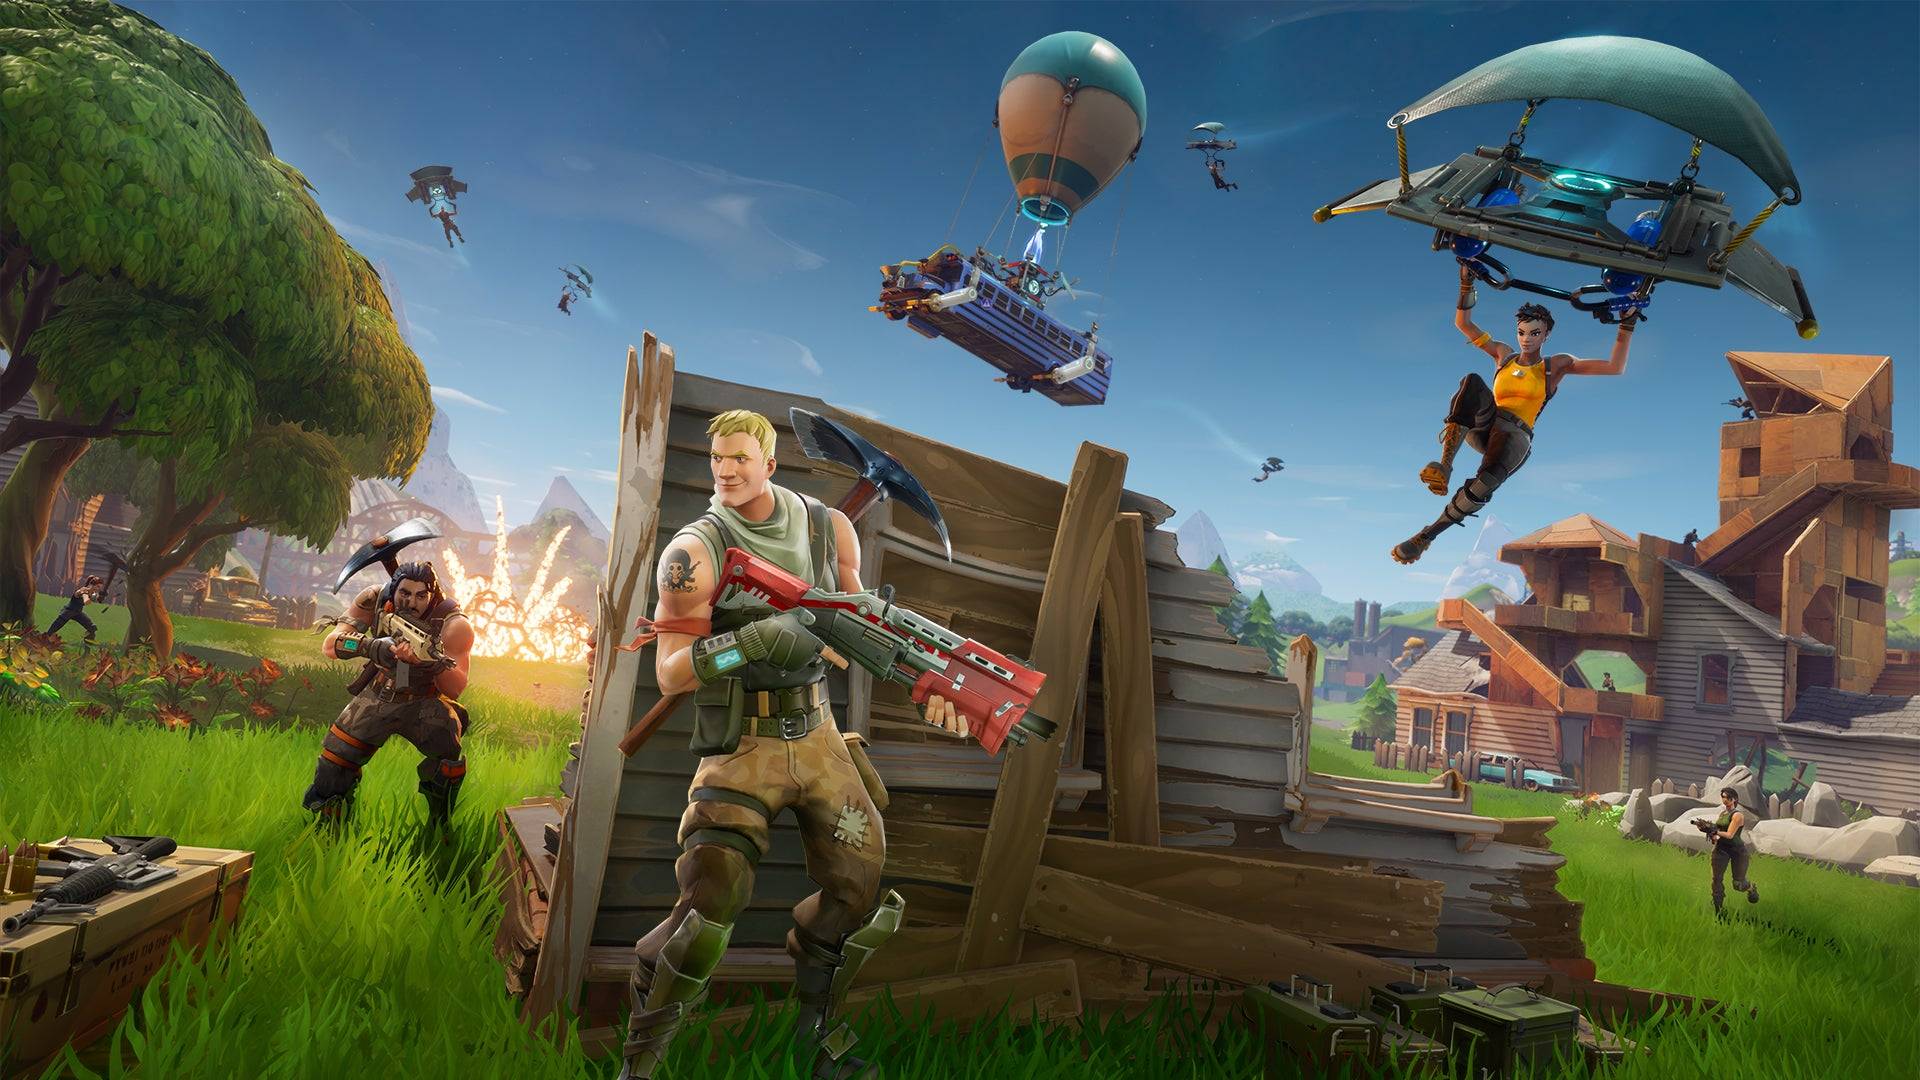 14 year old Fortnite cheater sued by Epic, defended by his Mother